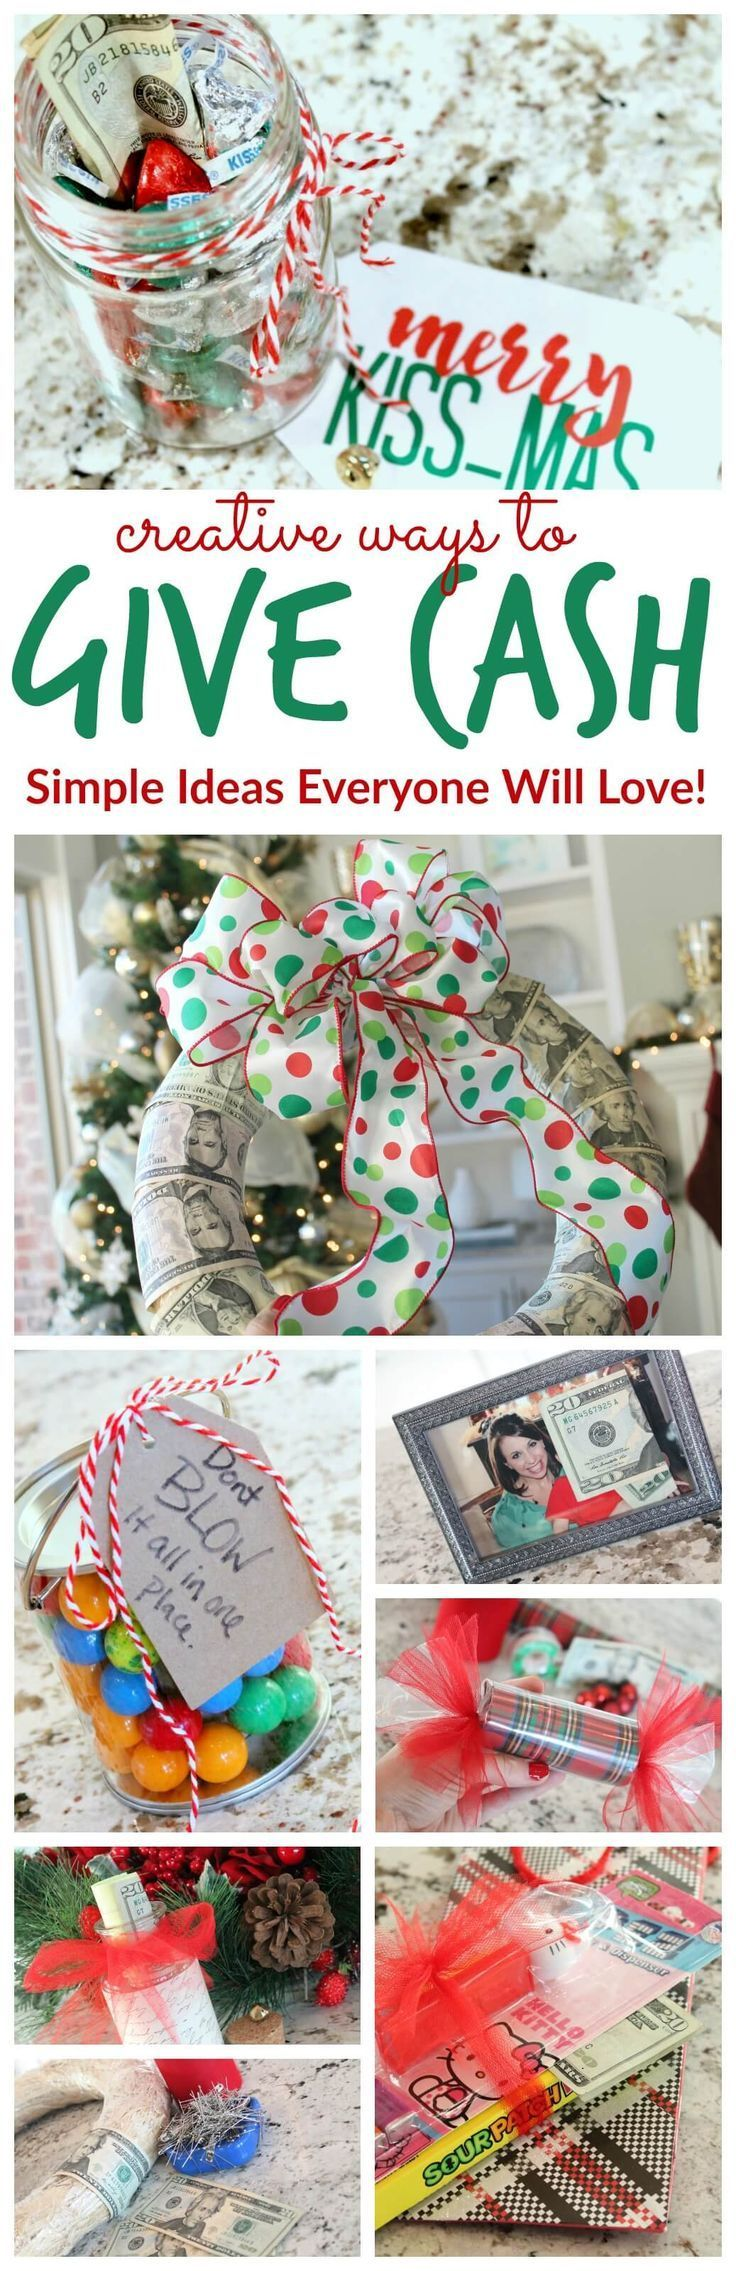 Amazing Fun Homemade Christmas Gift Ideas Part - 13: DIY Your Christmas Gifts This Year With GLAMULET. They Are Compatible With  Pandora Bracelets. Creative Ways To Give Cash As A Gift! Christmas Ideas  For Easy ...